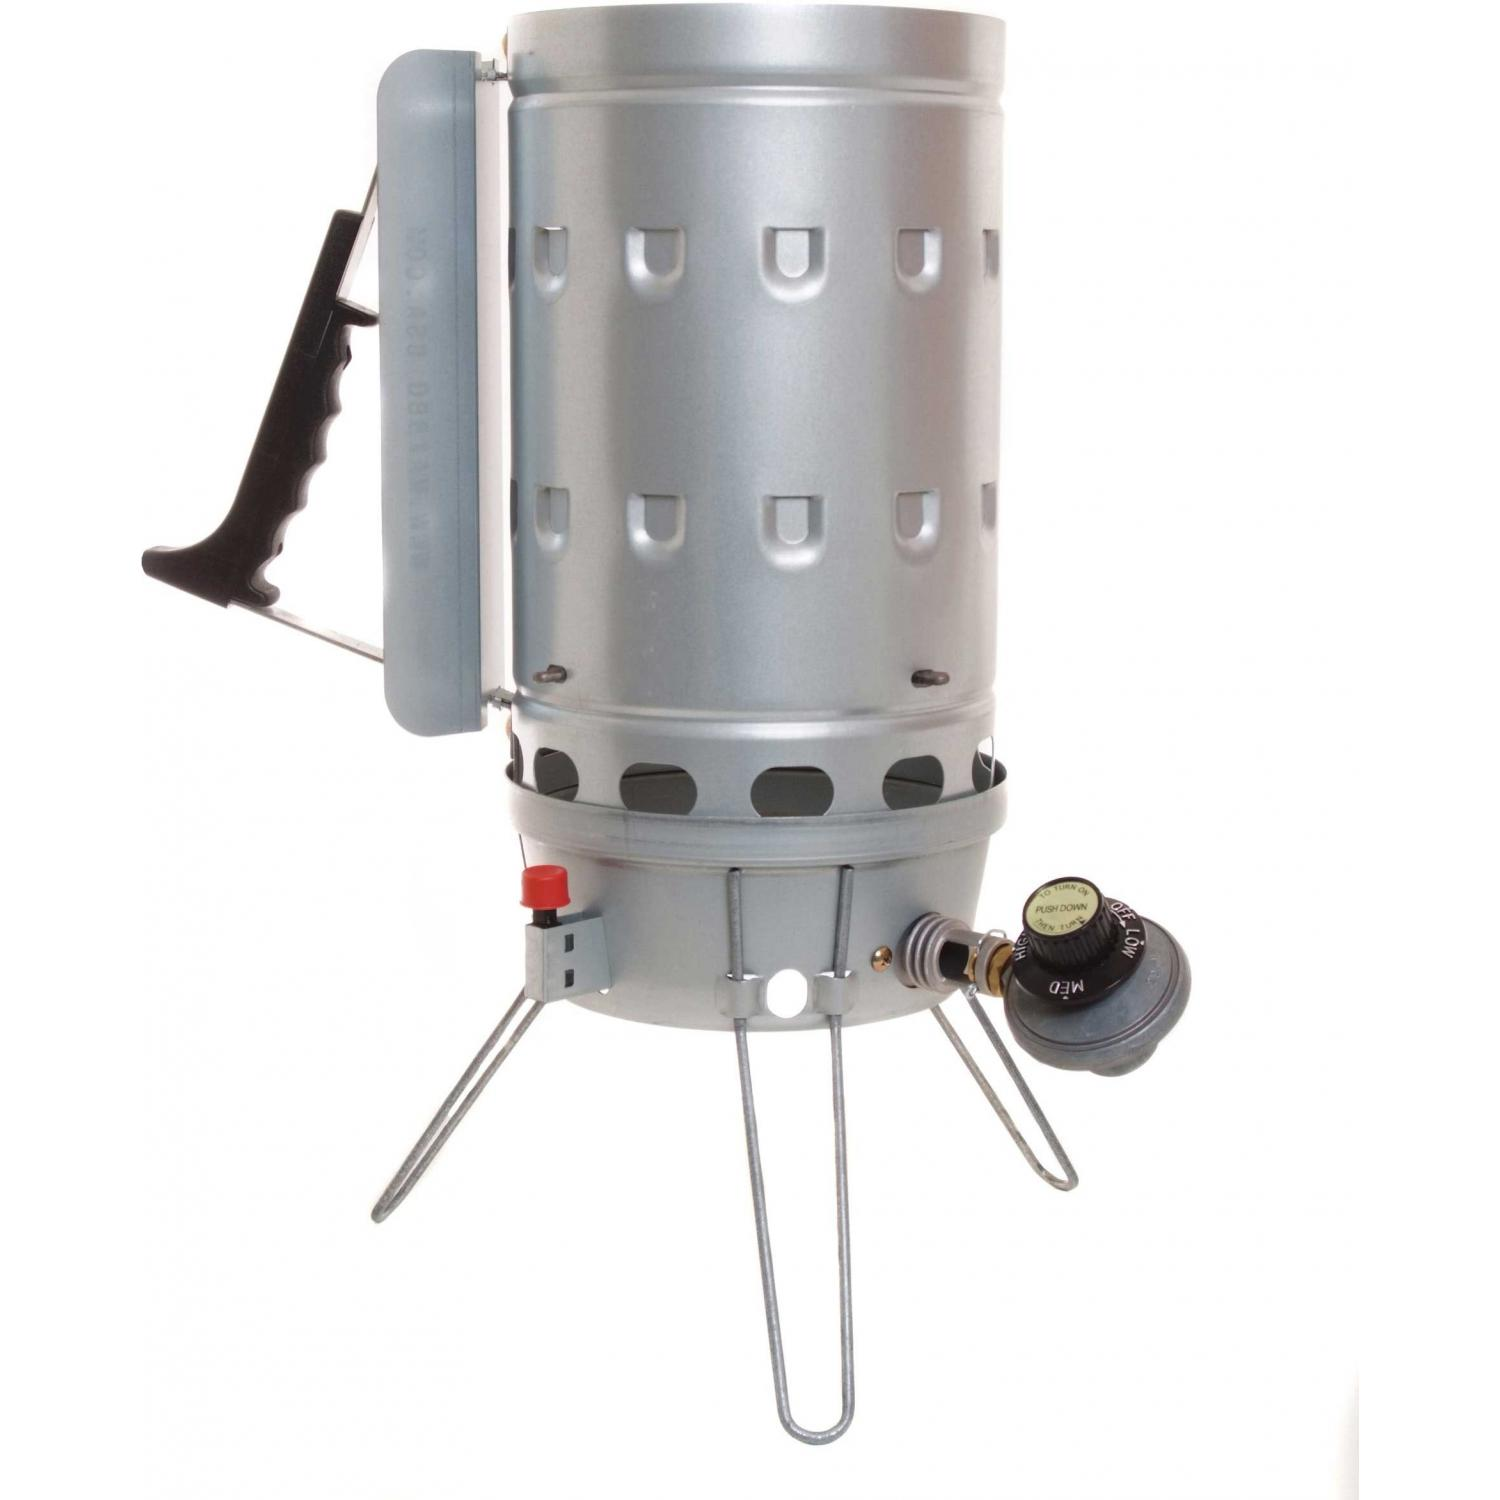 Max BBQ Eco Charcoal Chimney Starter With Gas Burner